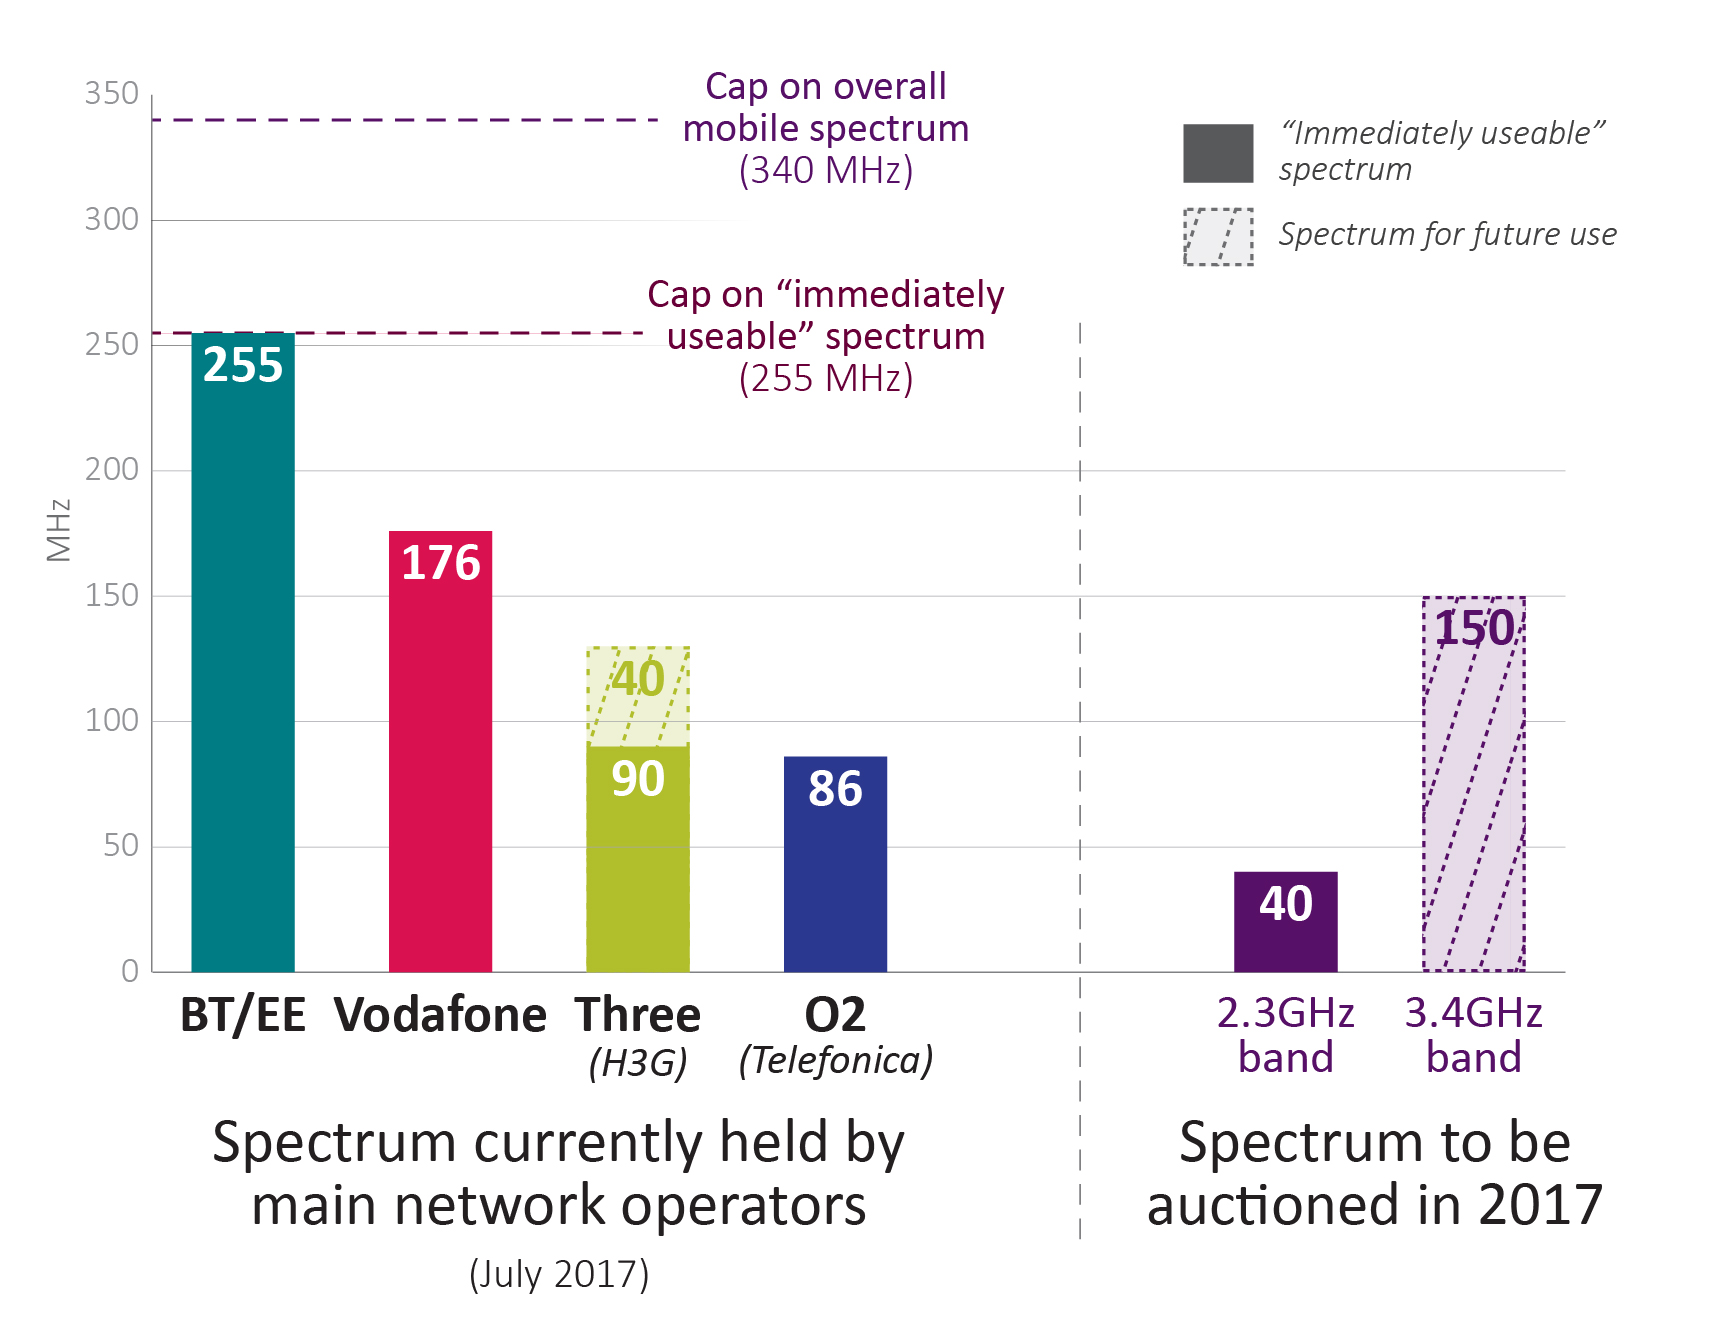 Spectrum currently held by network operators (in MHz): BT/EE = 255, Vodafone = 176, Three = 90, O2 = 86. Spectrum to be auctioned in 2017: 40 MHz of 2.3GHz band, 150 MHz of 3.4GHz.